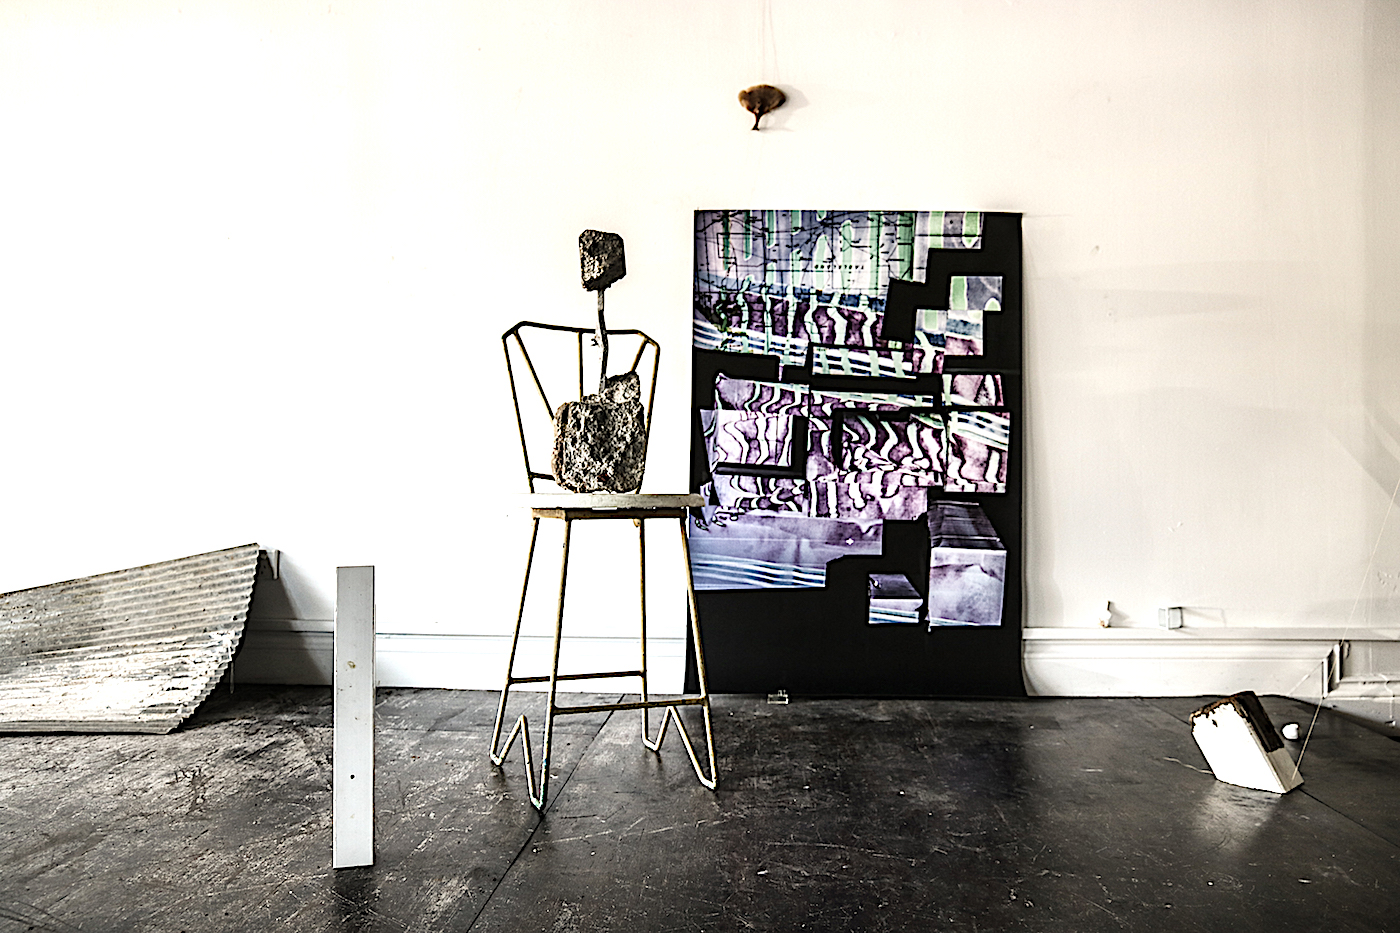 Series and installation 6